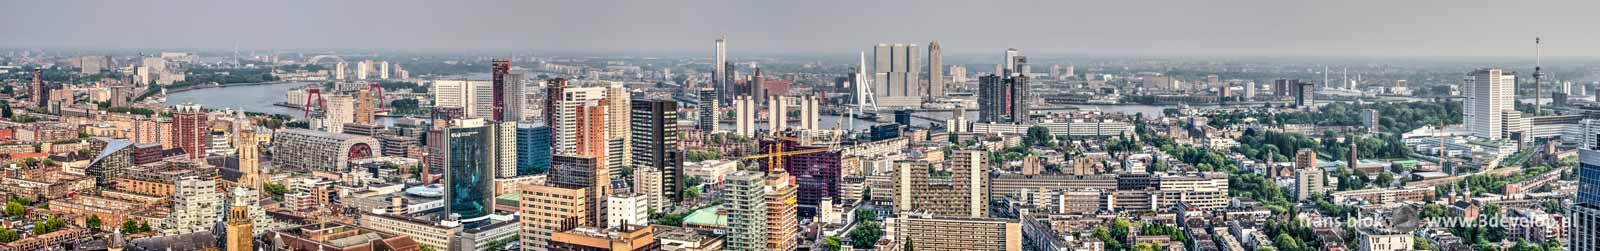 Panorama of downtown Rotterdam, composed of zes photo's made from the Delftse Poort building